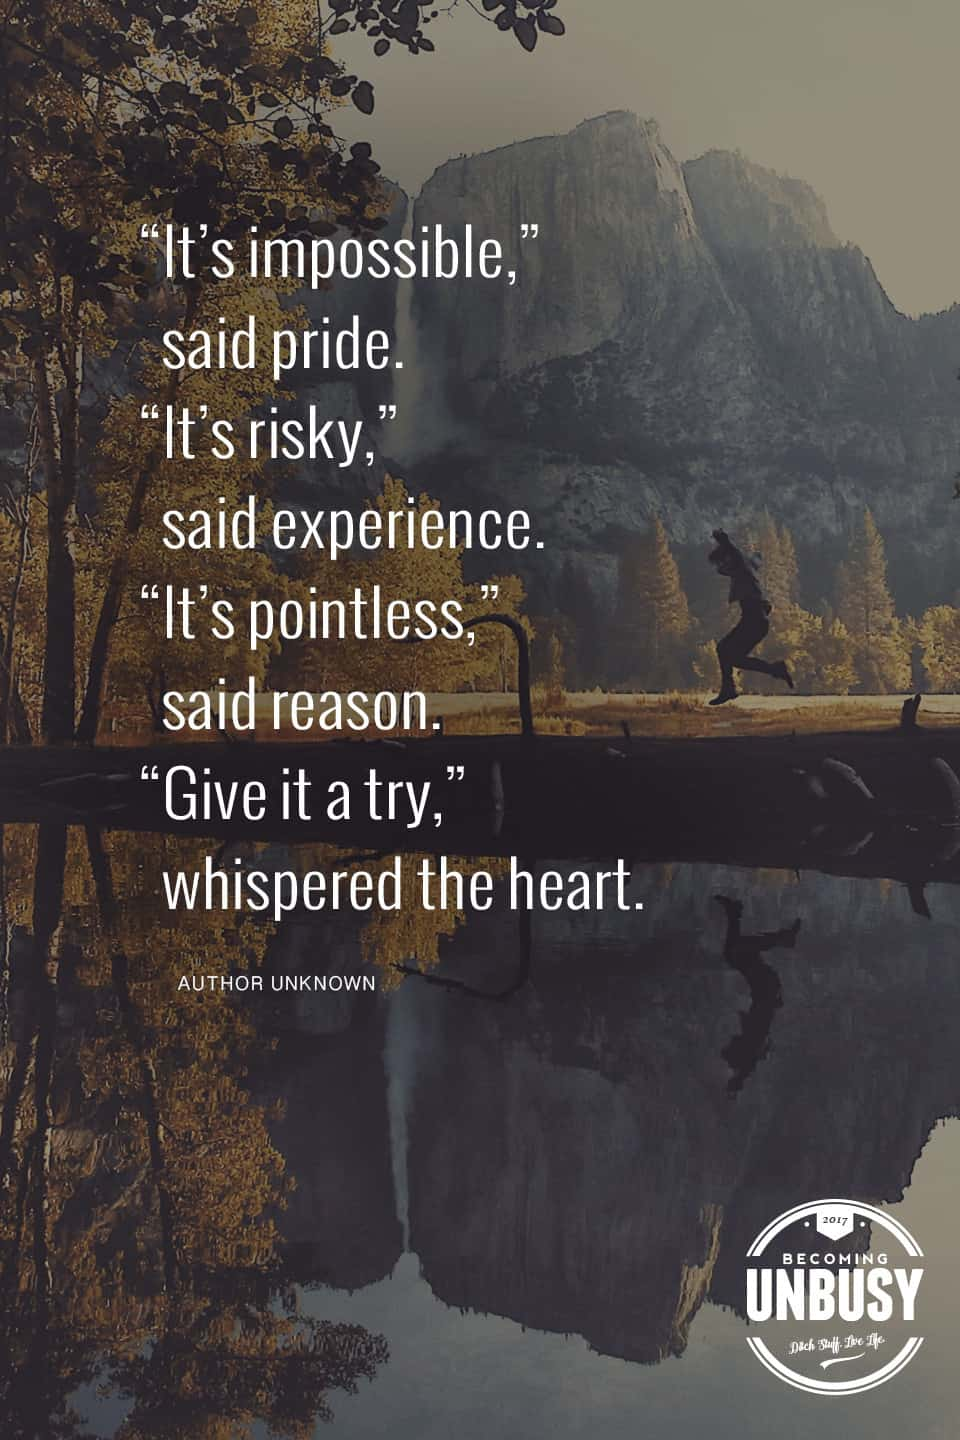 """An image of a child jumping into a pond in the mountains with the following quote on top, """"It's impossible,"""" said pride. """"It's risky, """" said experience. """"It's pointless,"""" said reason. """"Give it a try,"""" whispered the heart."""